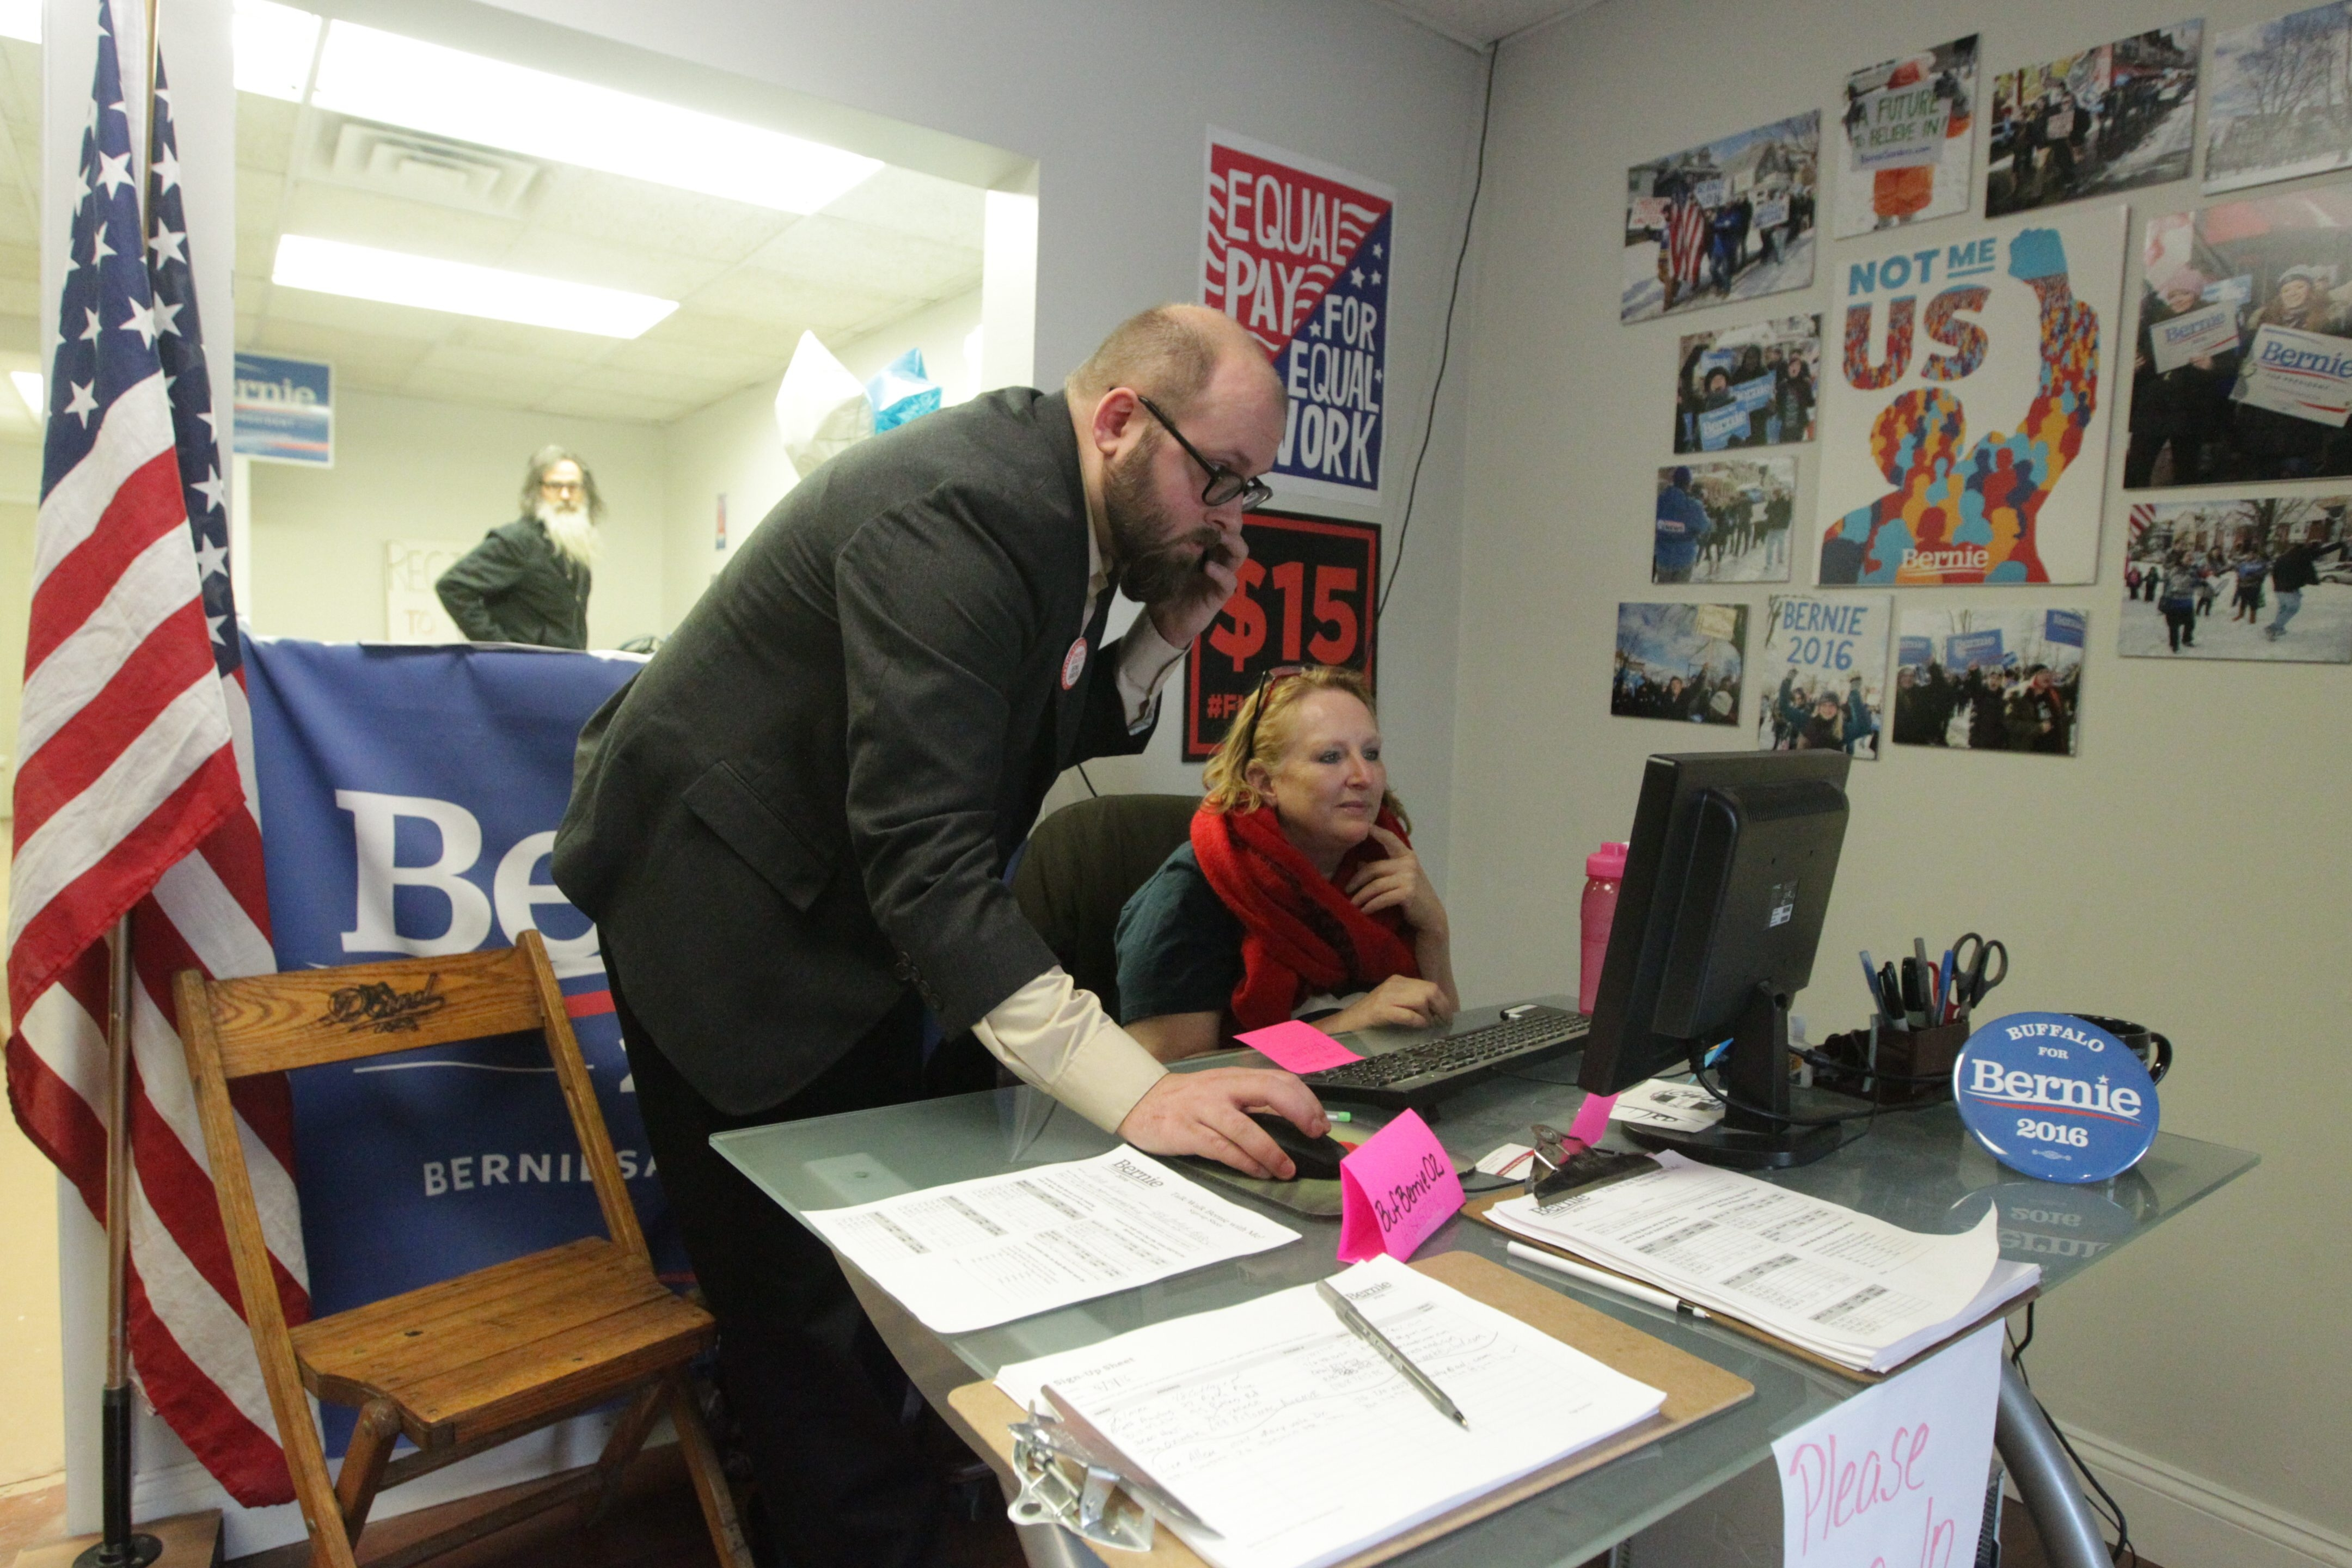 Local Sanders' campaign coordinator Brian Nowak works with Lisa Allen of Cheektowaga at a phone bank where they will be recruiting volunteers and spreading Sanders' message.